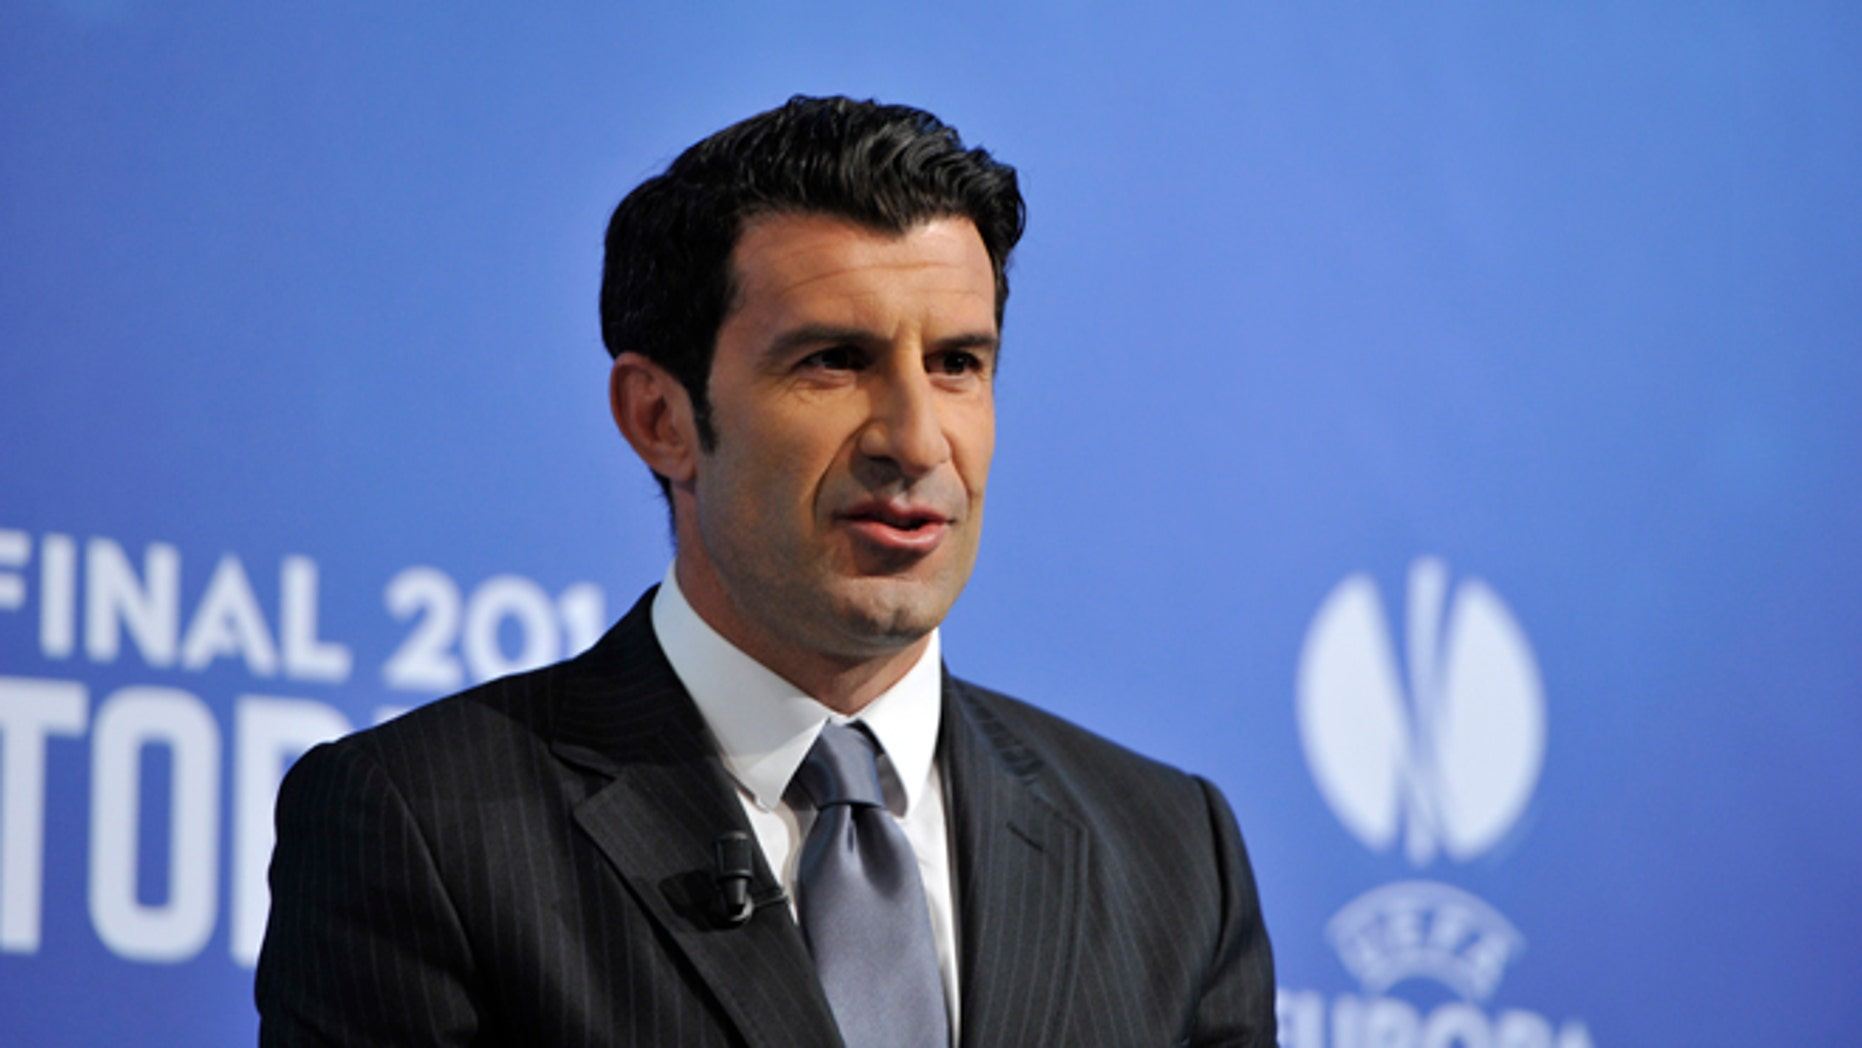 Luís Figo on April 11, 2014 in Nyon, Switzerland.